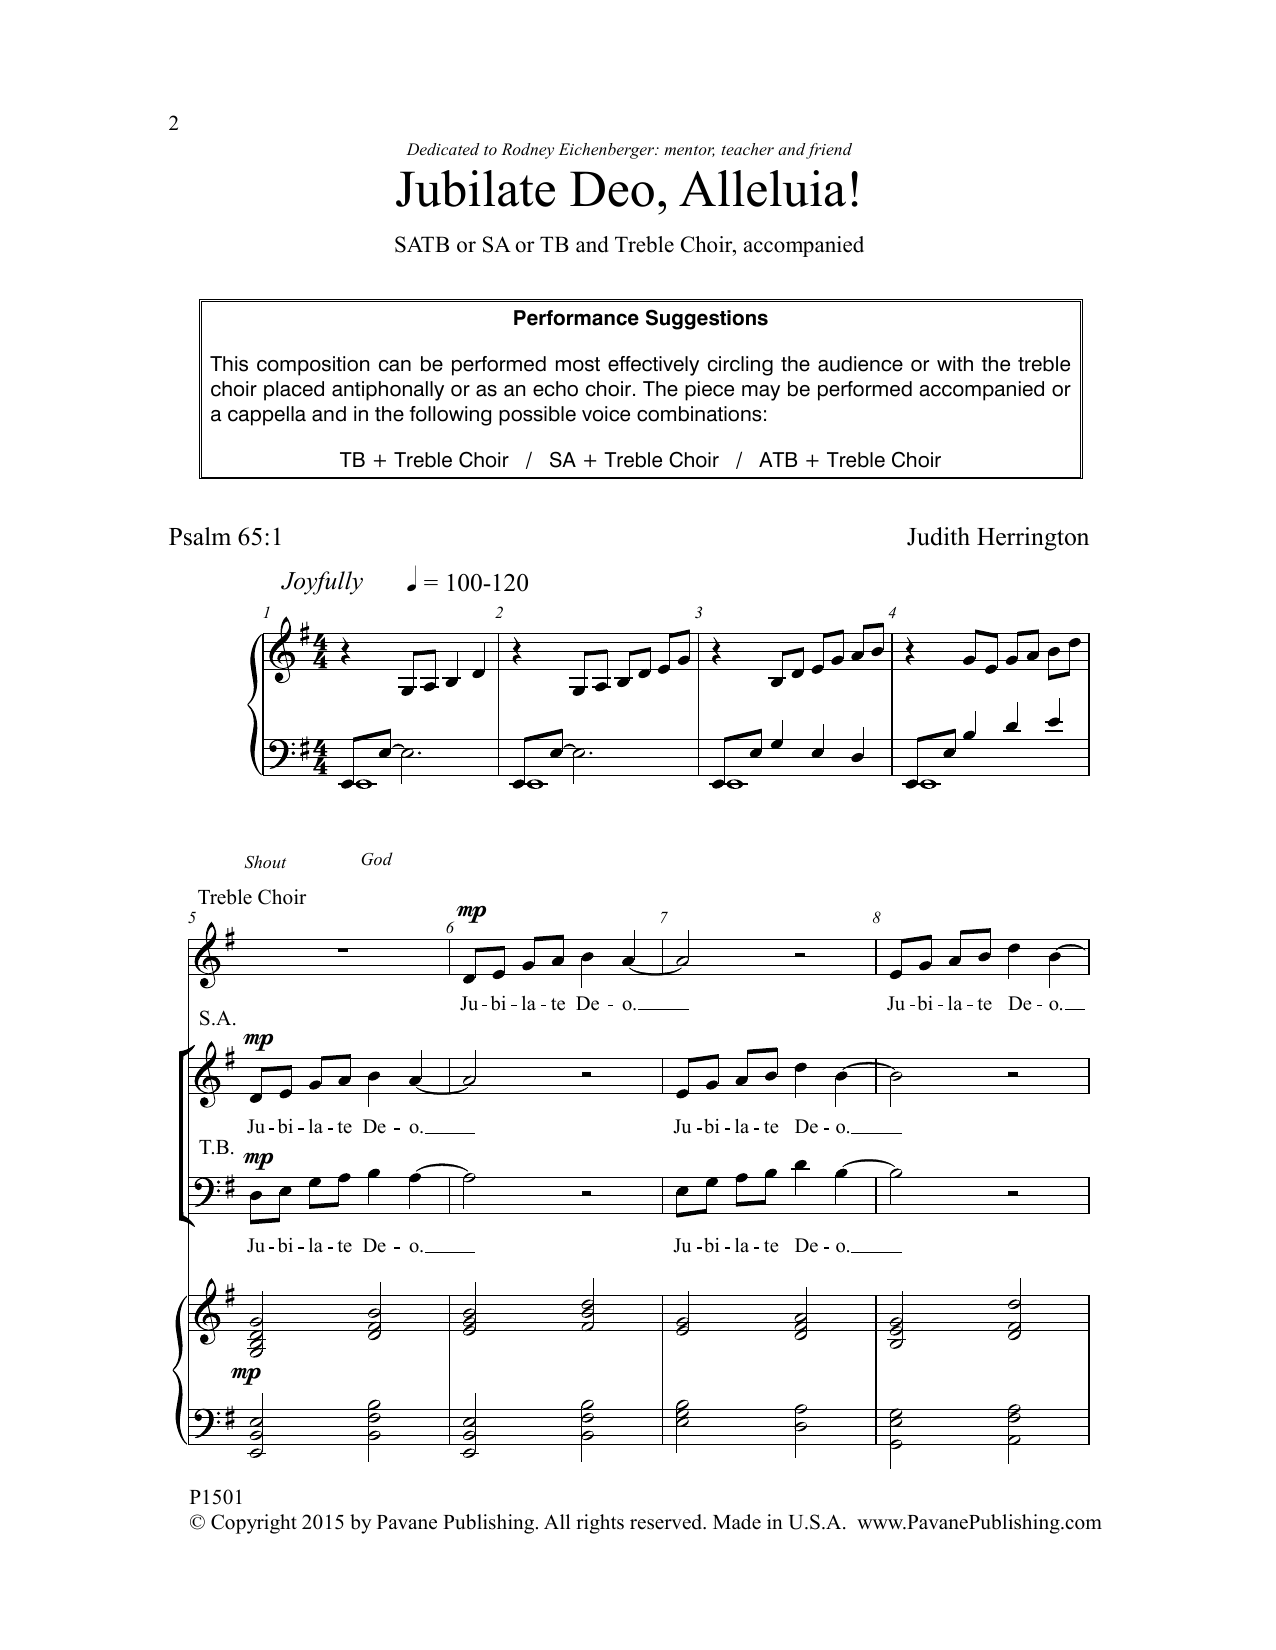 Jubilate Deo, Alleluia! Sheet Music